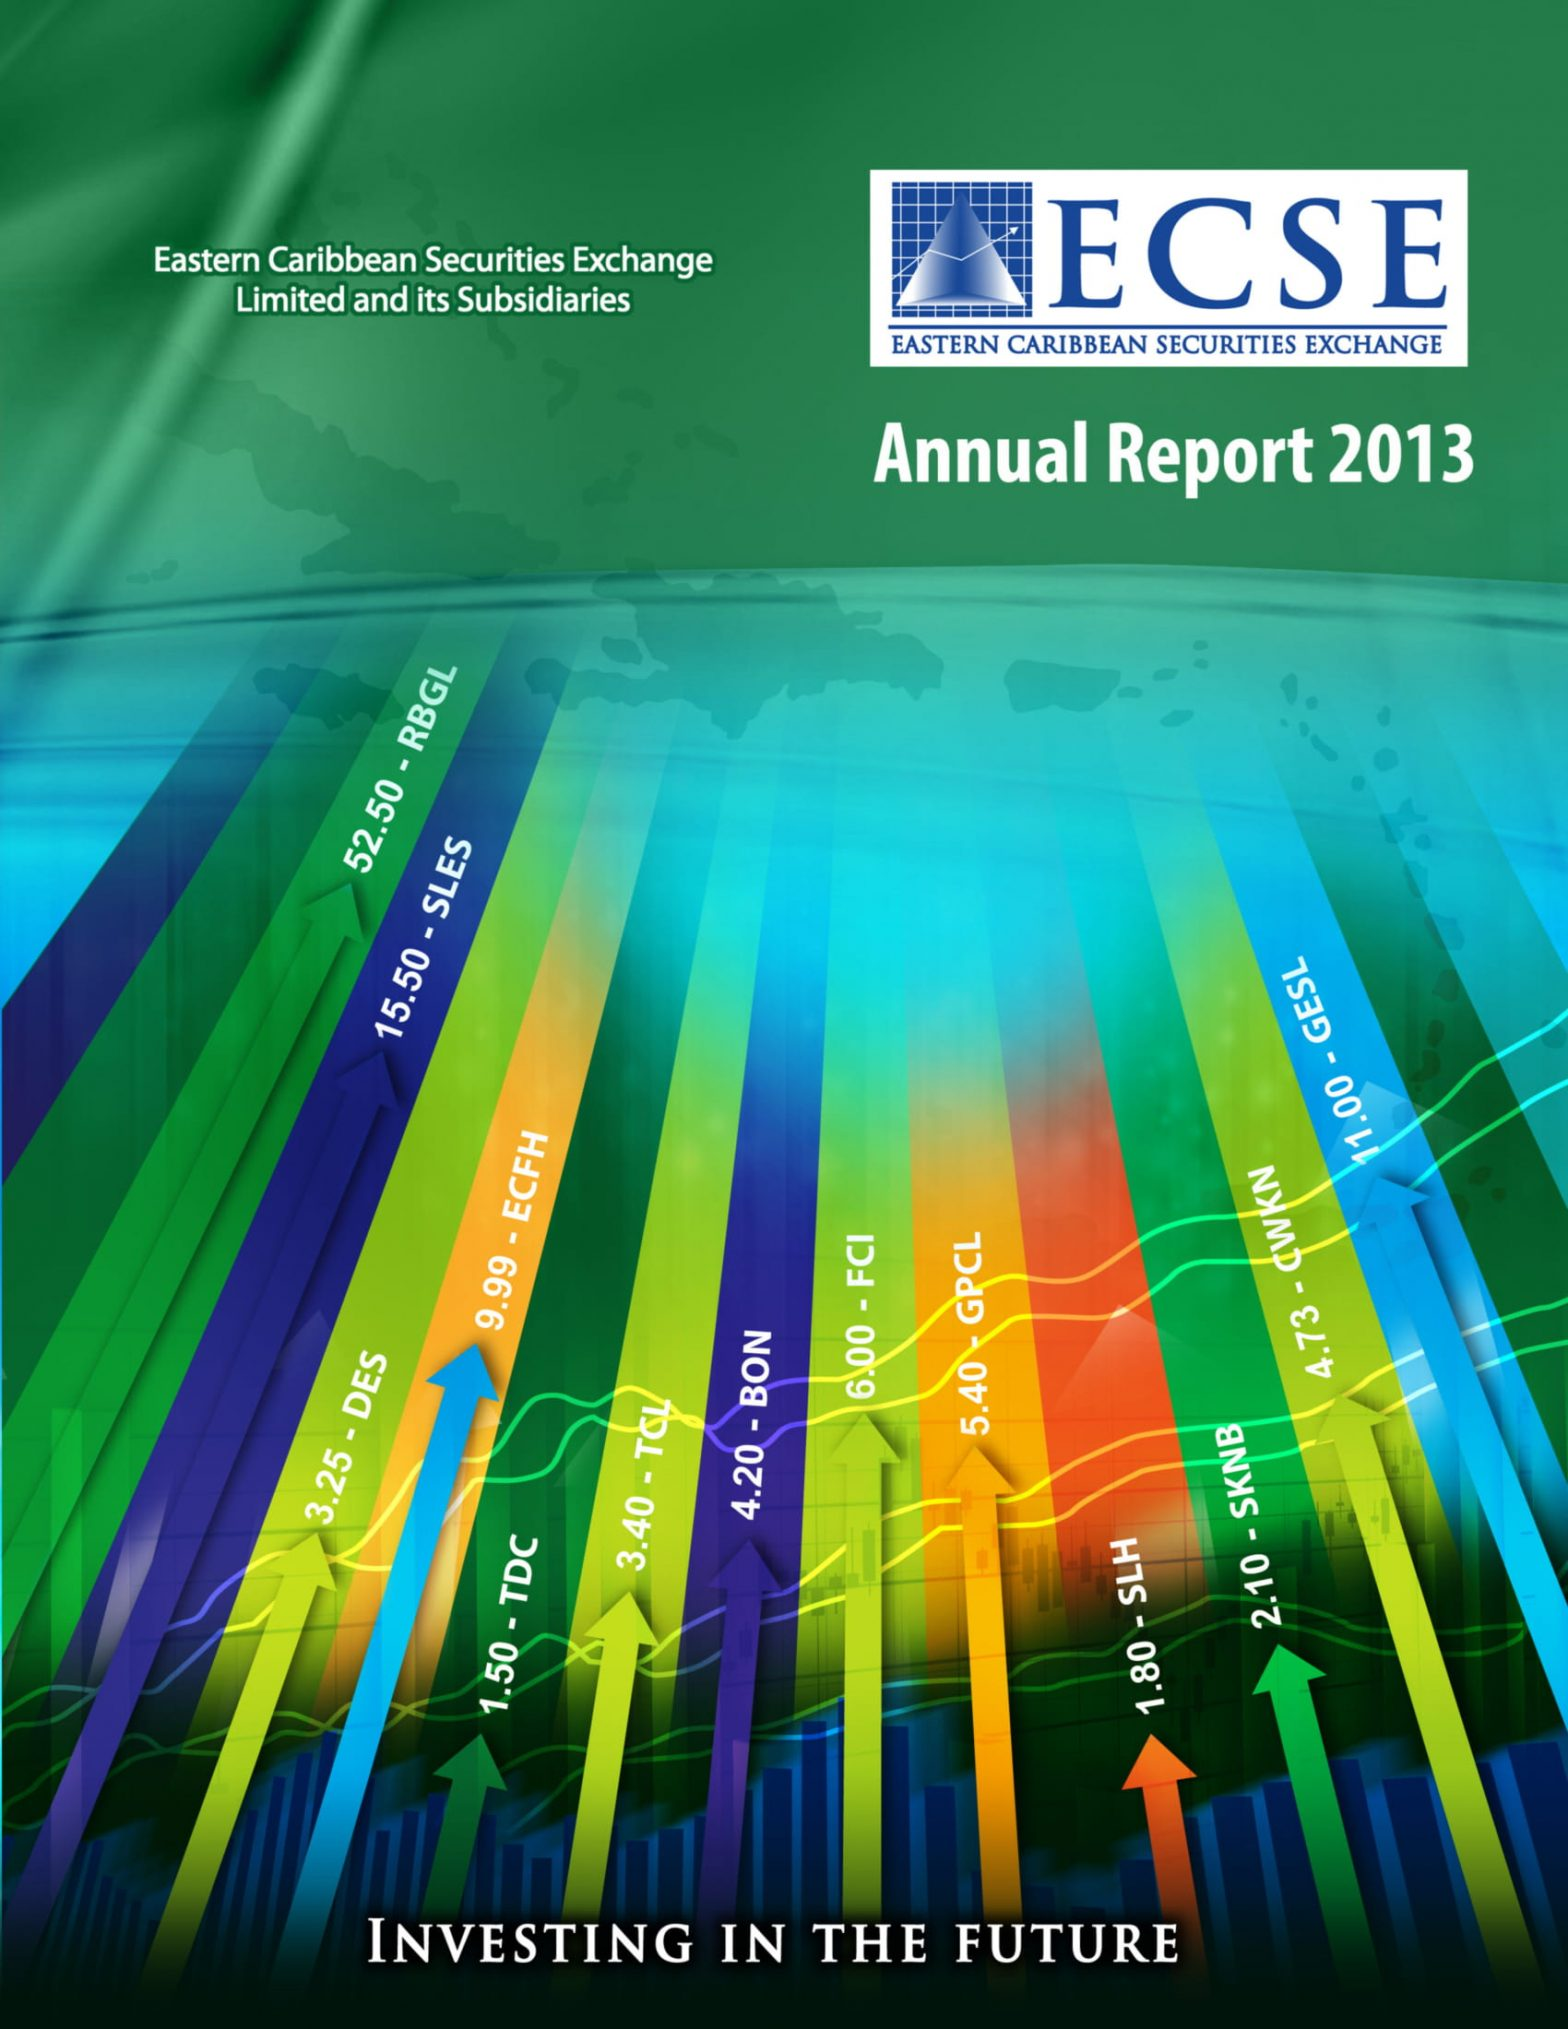 ECSE Annual Report 2013